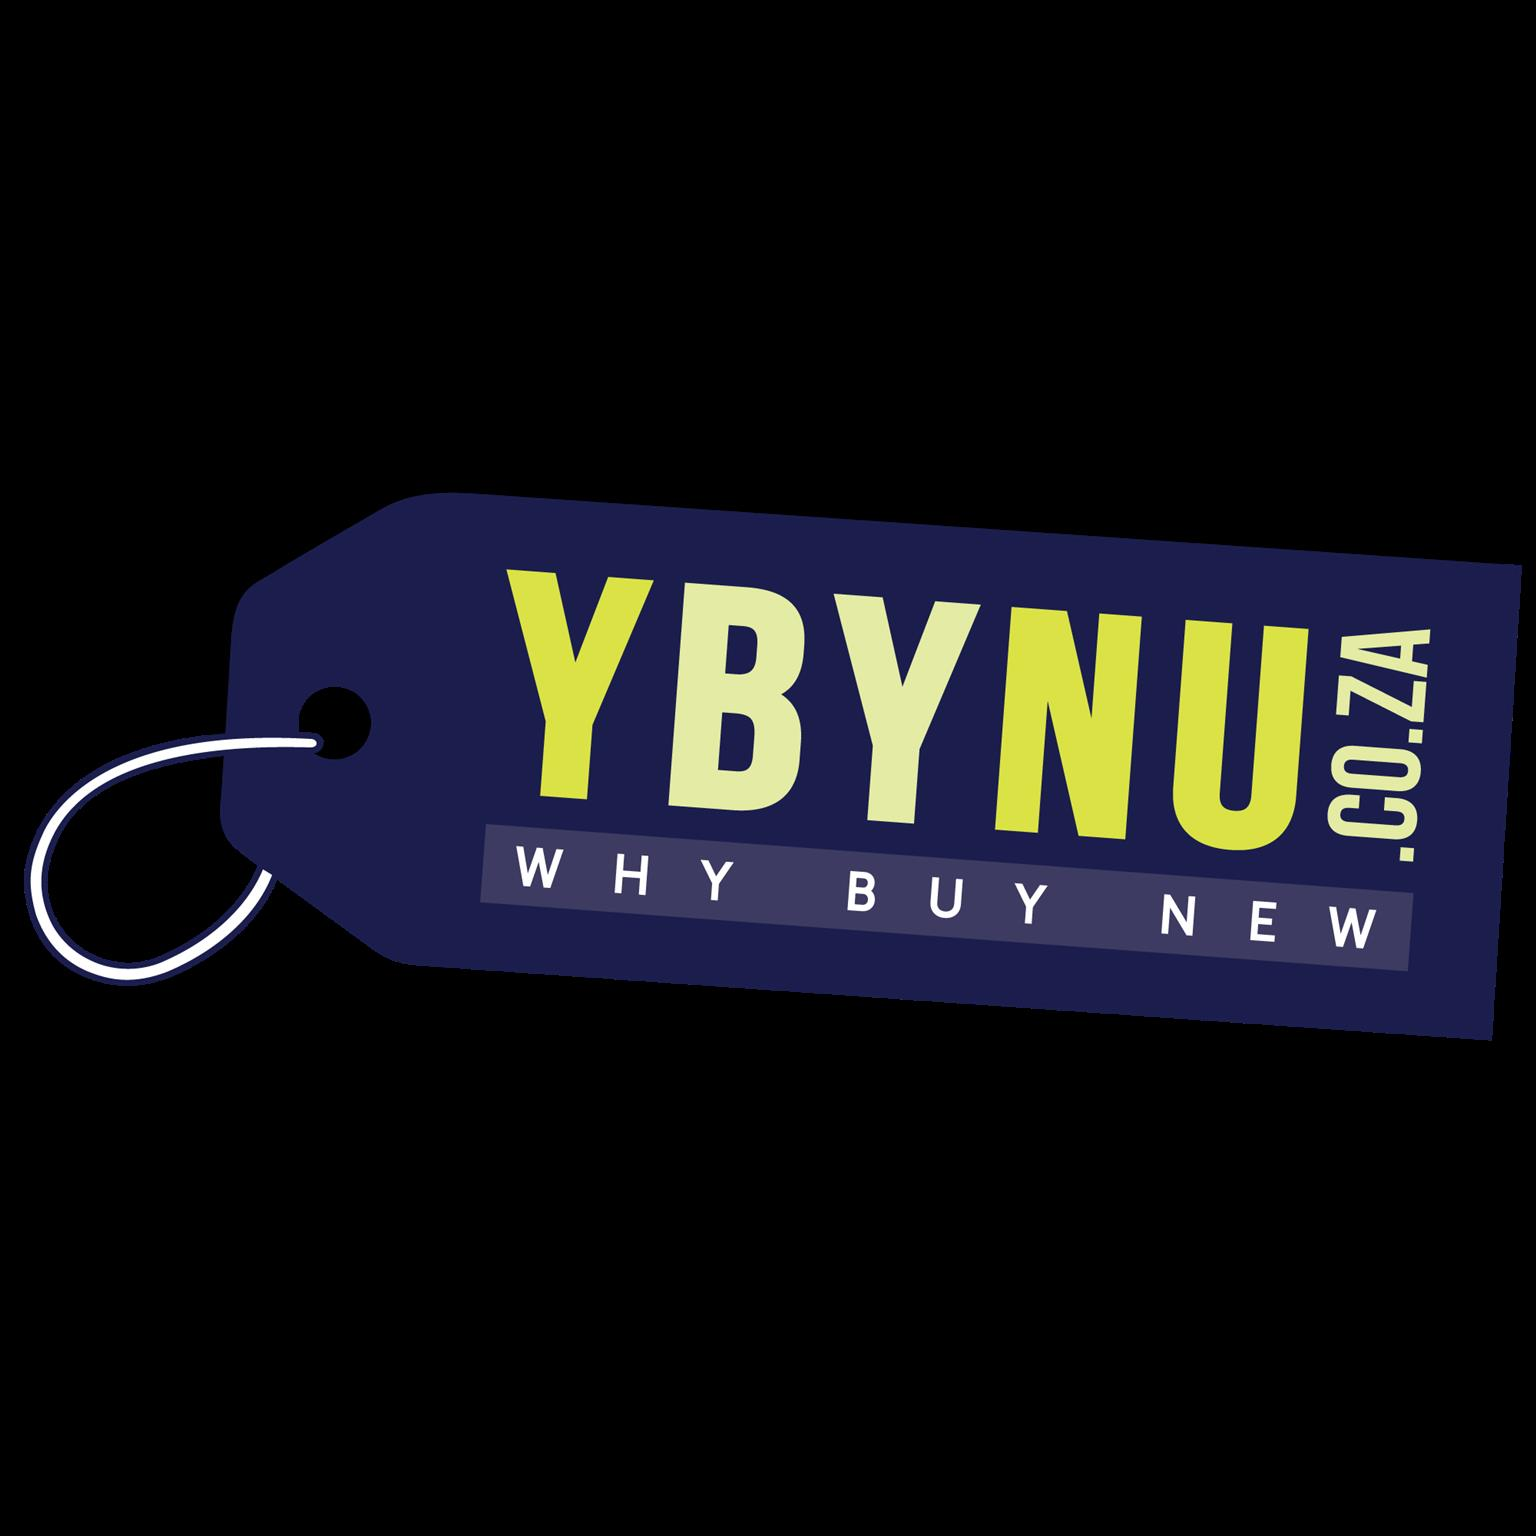 Find YBYNU's adverts listed on Junk Mail